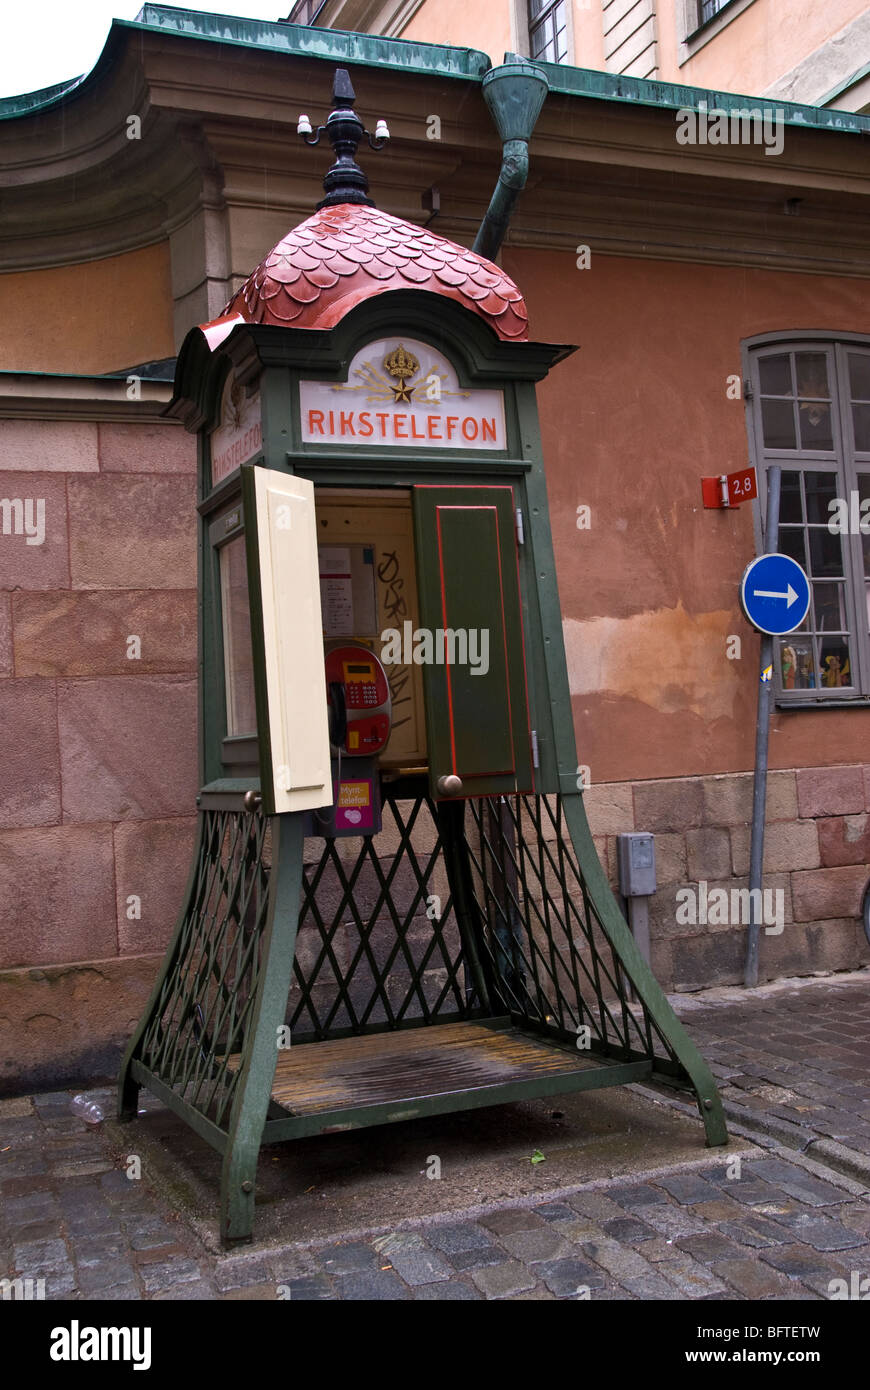 A public telephone box in Gamla San Stockholm - Stock Image